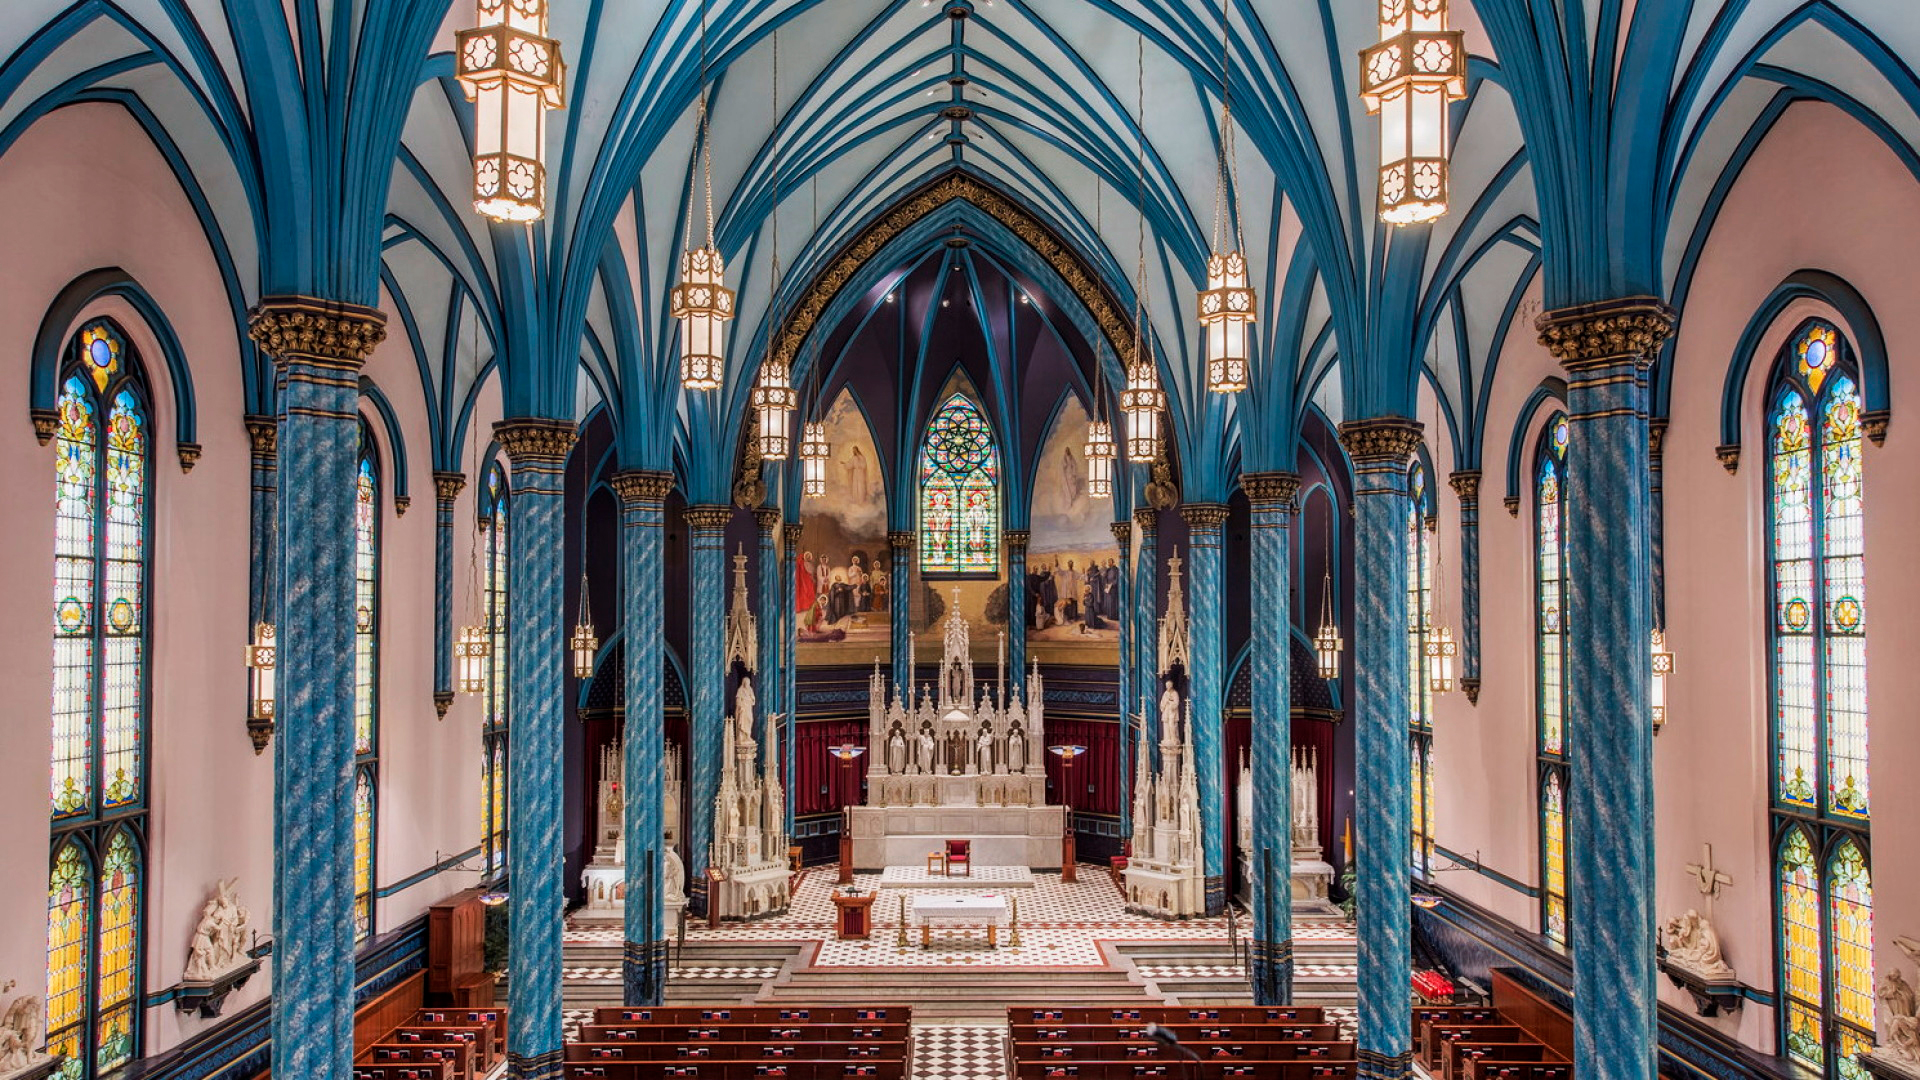 Preserving historic buildings and sacred spaces is an awesome responsibility for any organization - At Wiebold Studio, we consider it a privilege to lend our expertise to these projects, ensuring that future generations enjoy these incredible spaces.